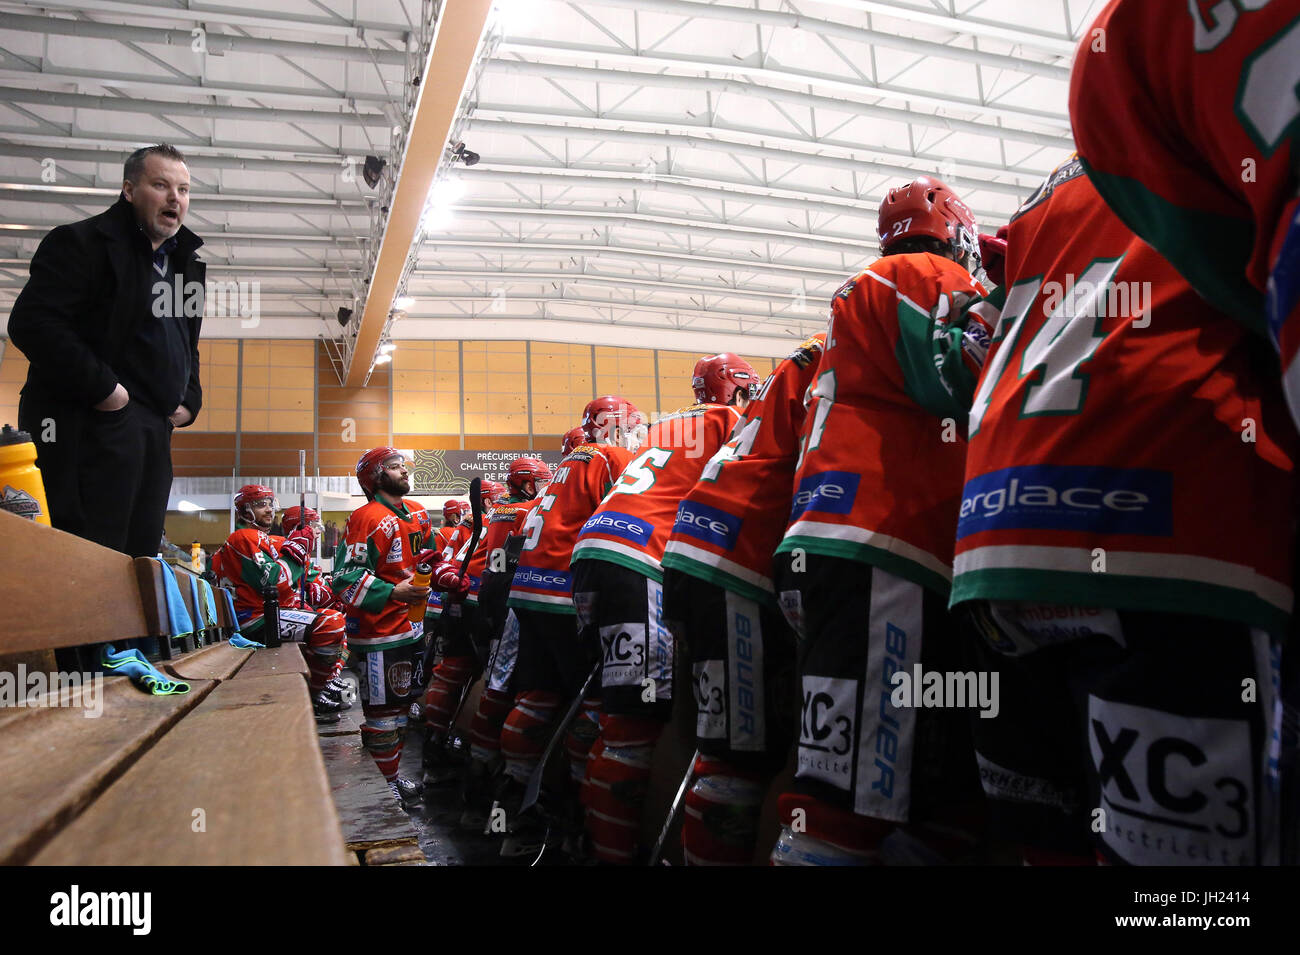 Ice Hockey match.  Coach.  France. - Stock Image